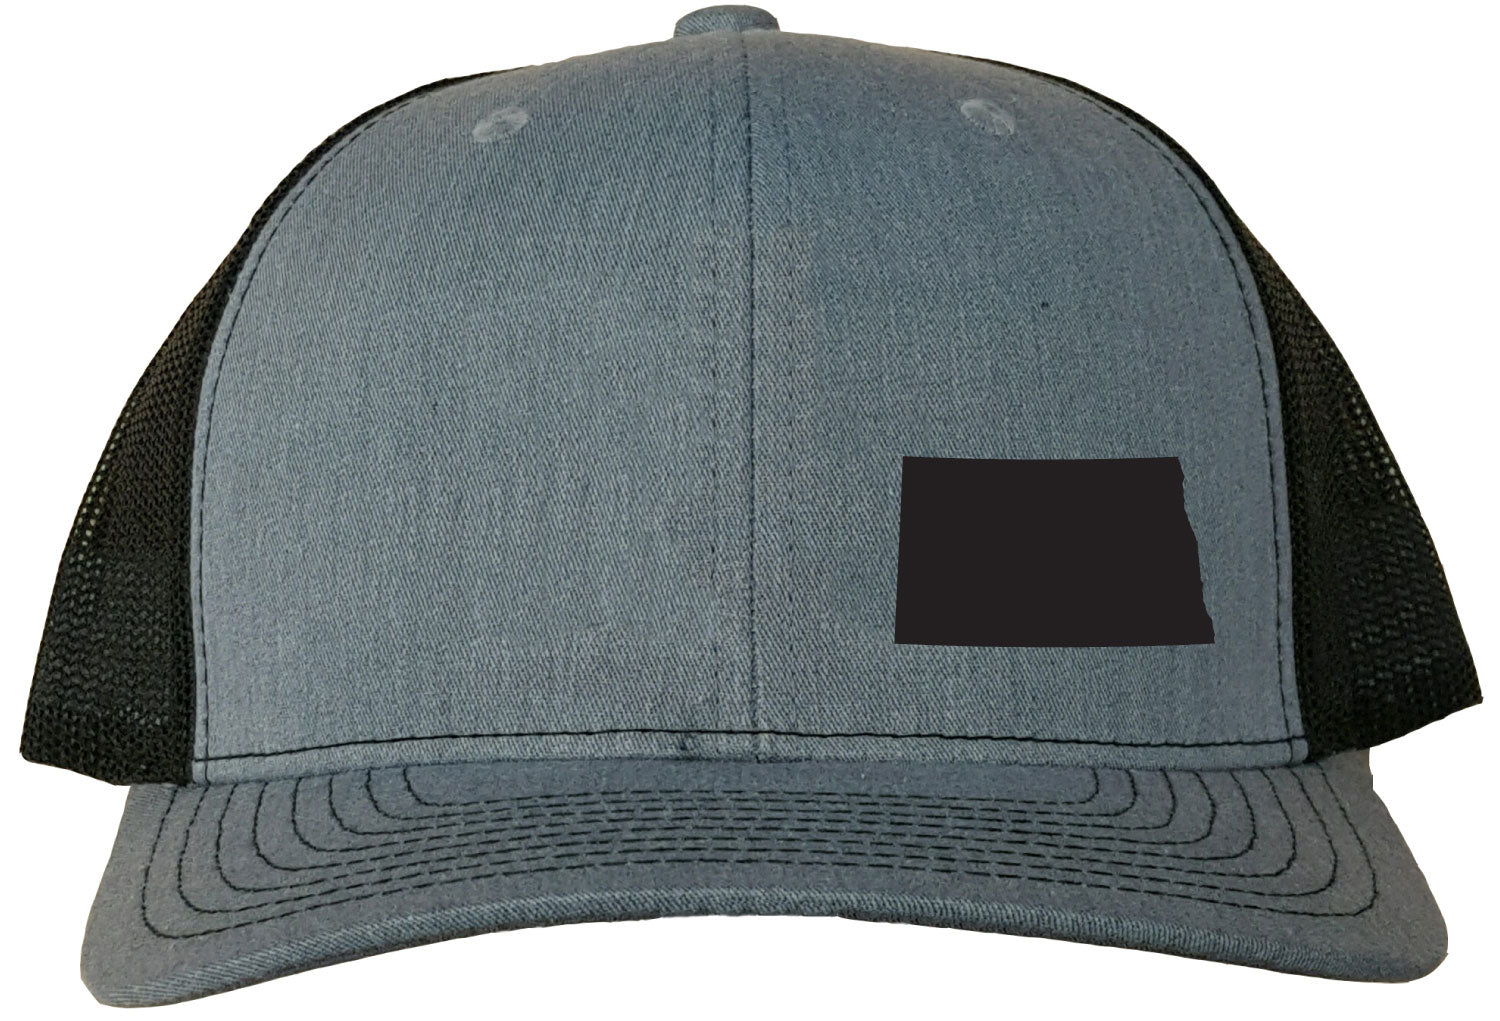 North Dakota Snapback Hat - Grey/Black